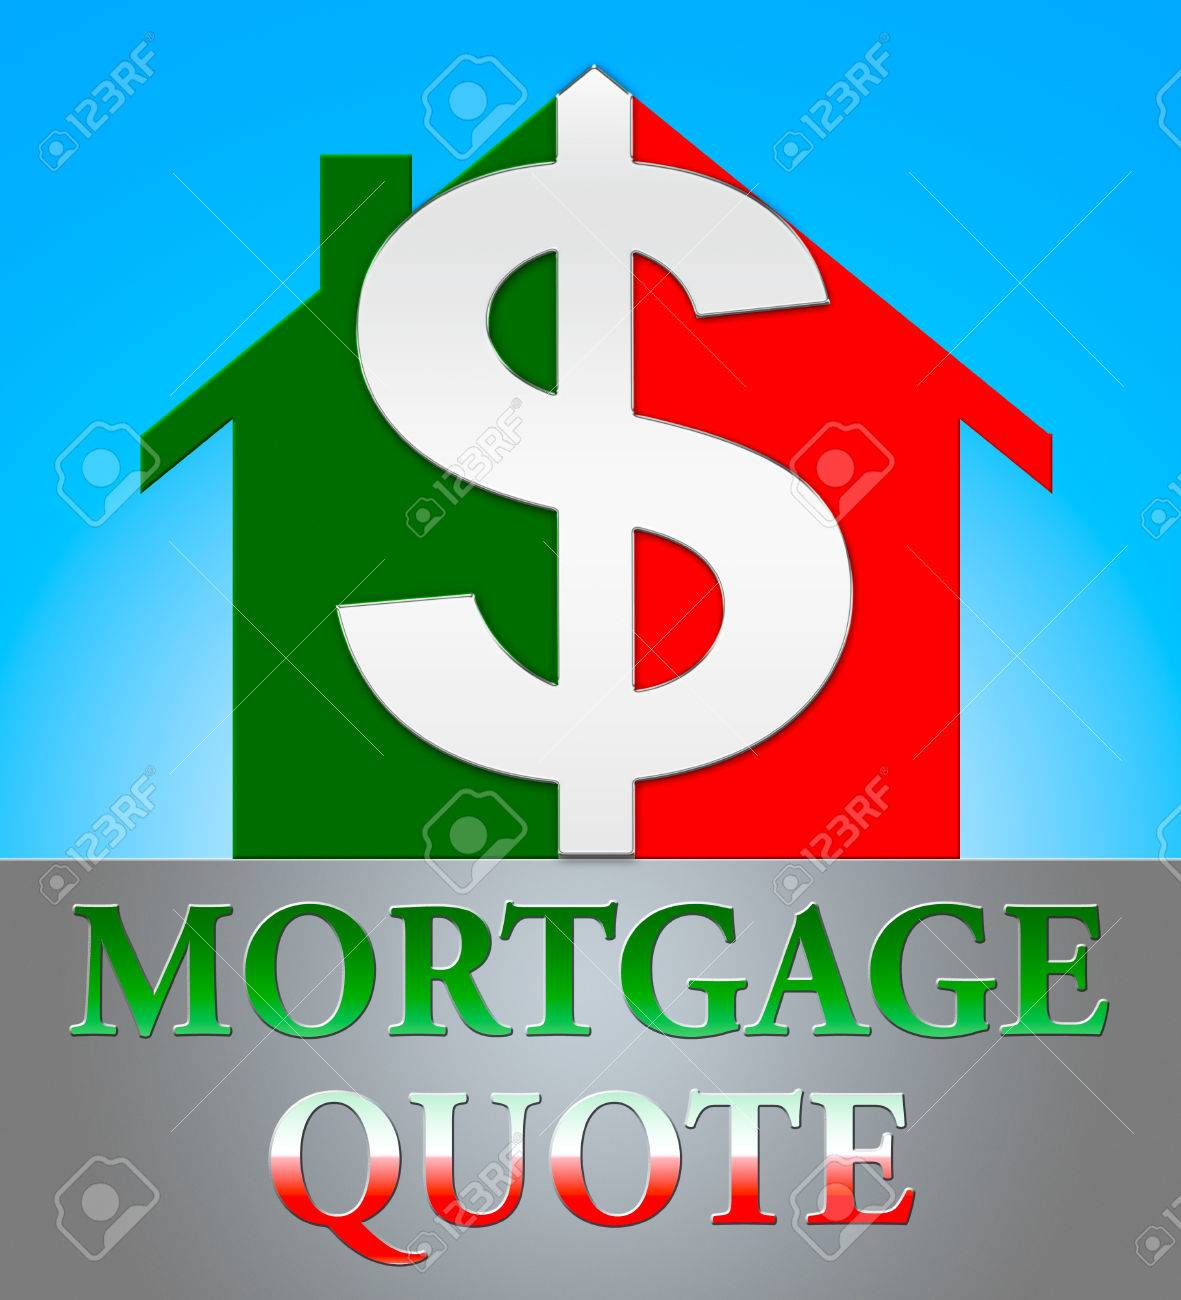 Mortgage Quote Pleasing Mortgage Quote Dollar Icon Means Real Estate 3D Illustration Stock